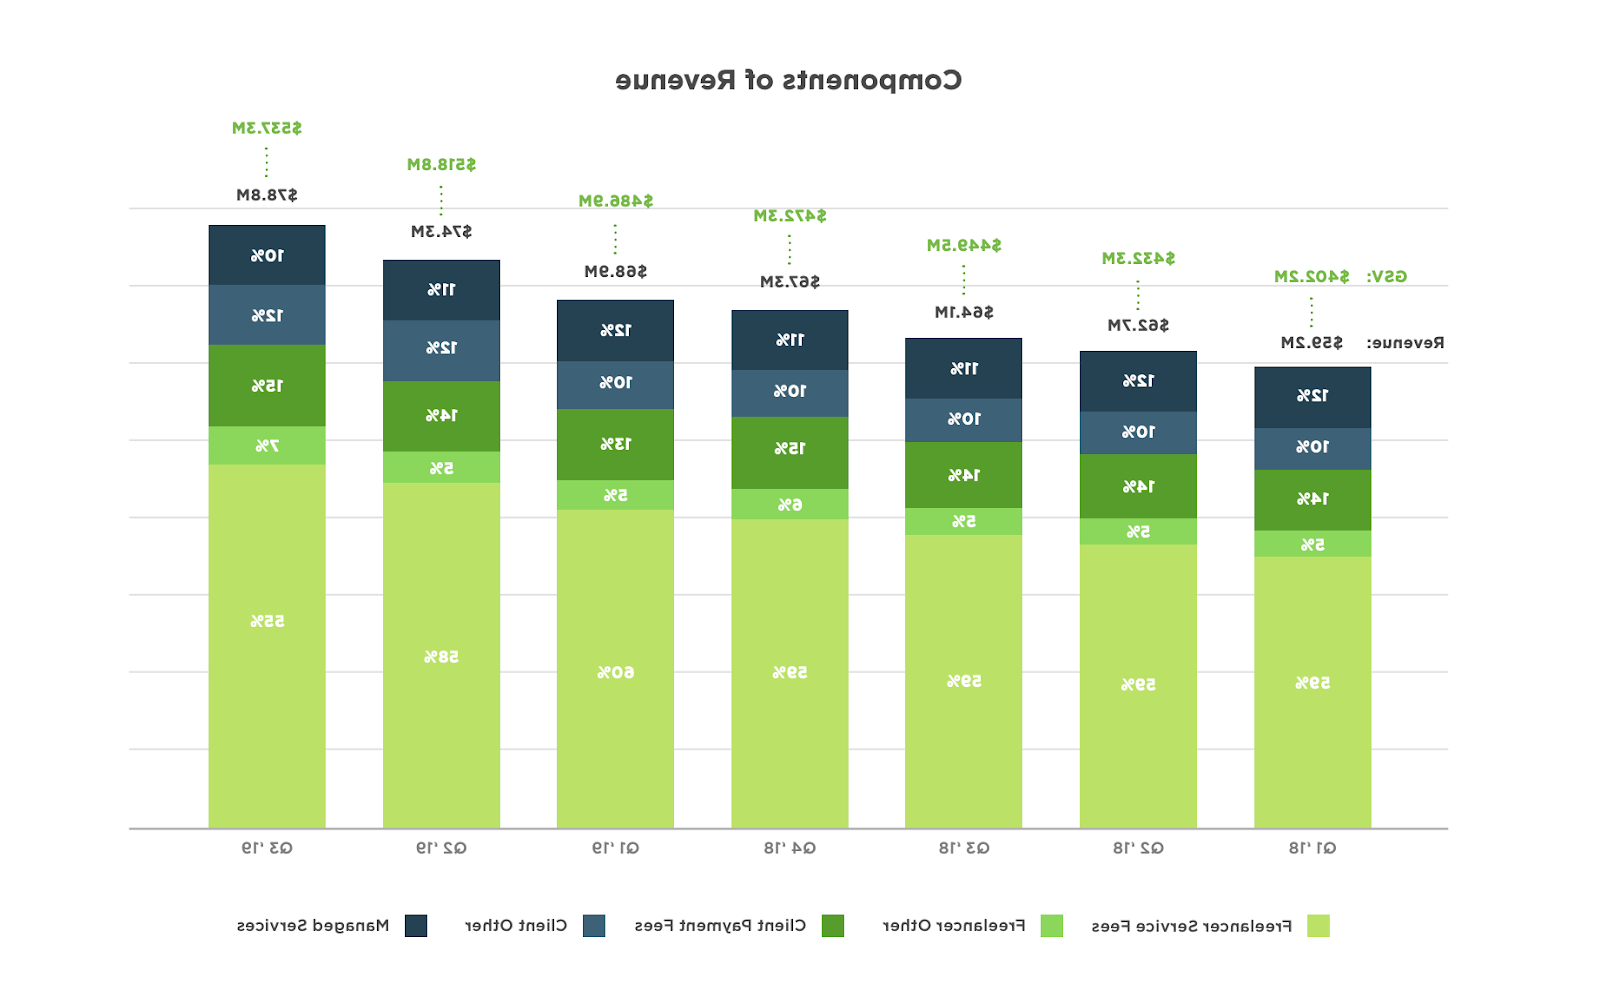 What is the most in demand skill on Upwork?